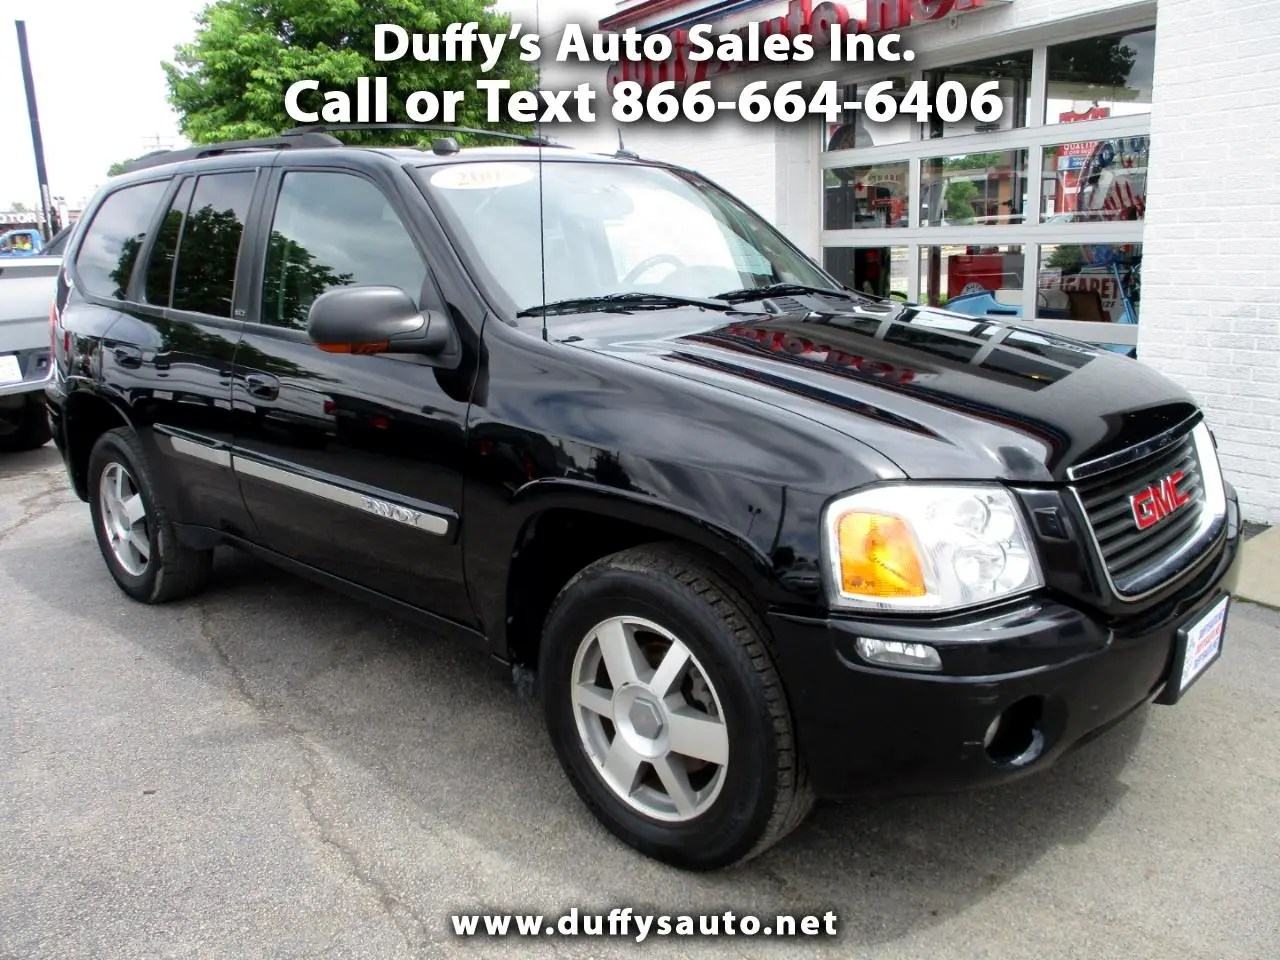 hight resolution of 2005 gmc envoy 4dr 4wd slt